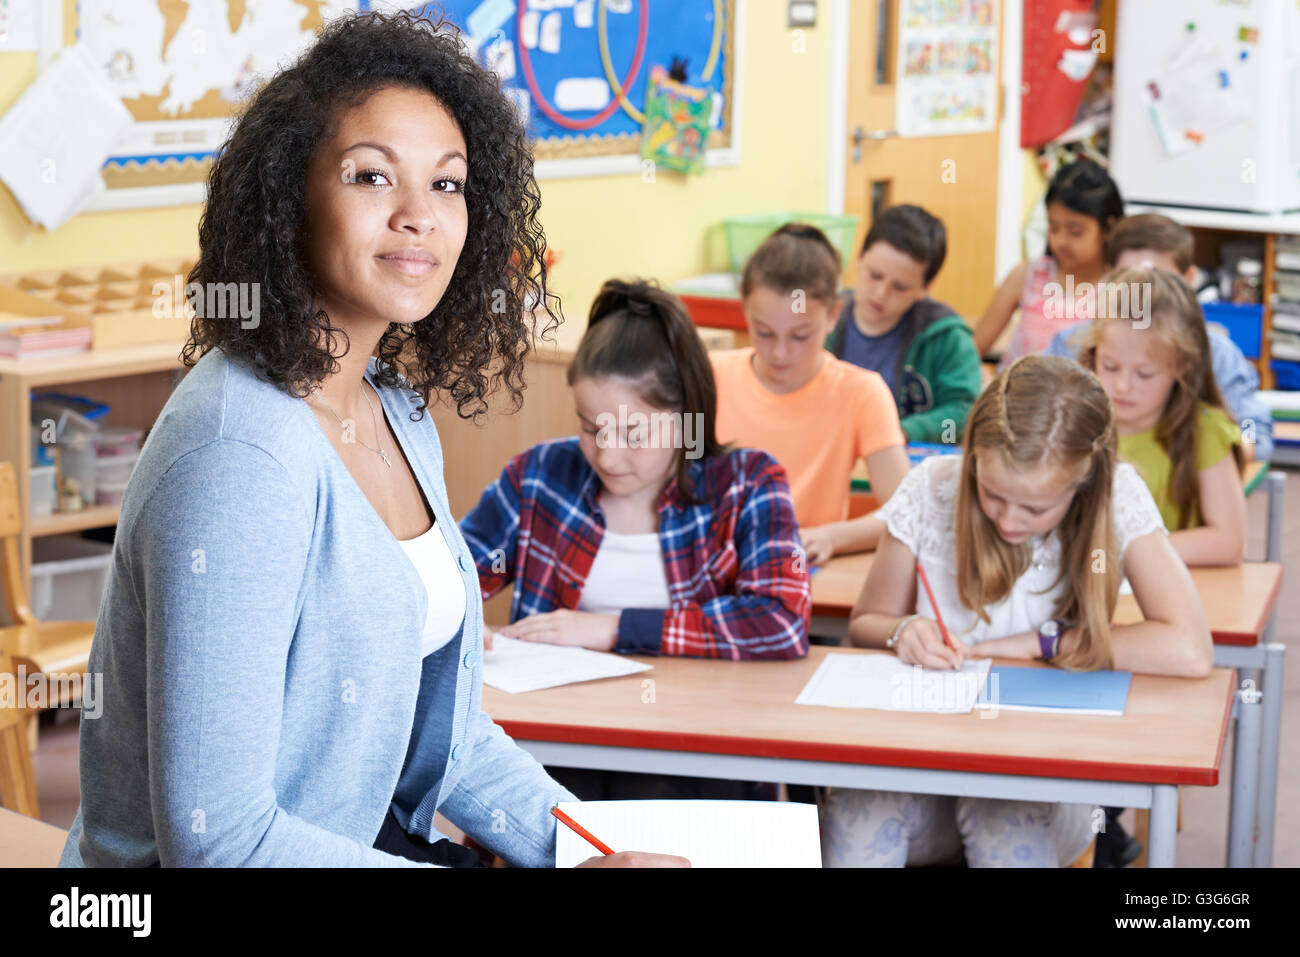 Portrait Of Teacher In Class With Pupils - Stock Image